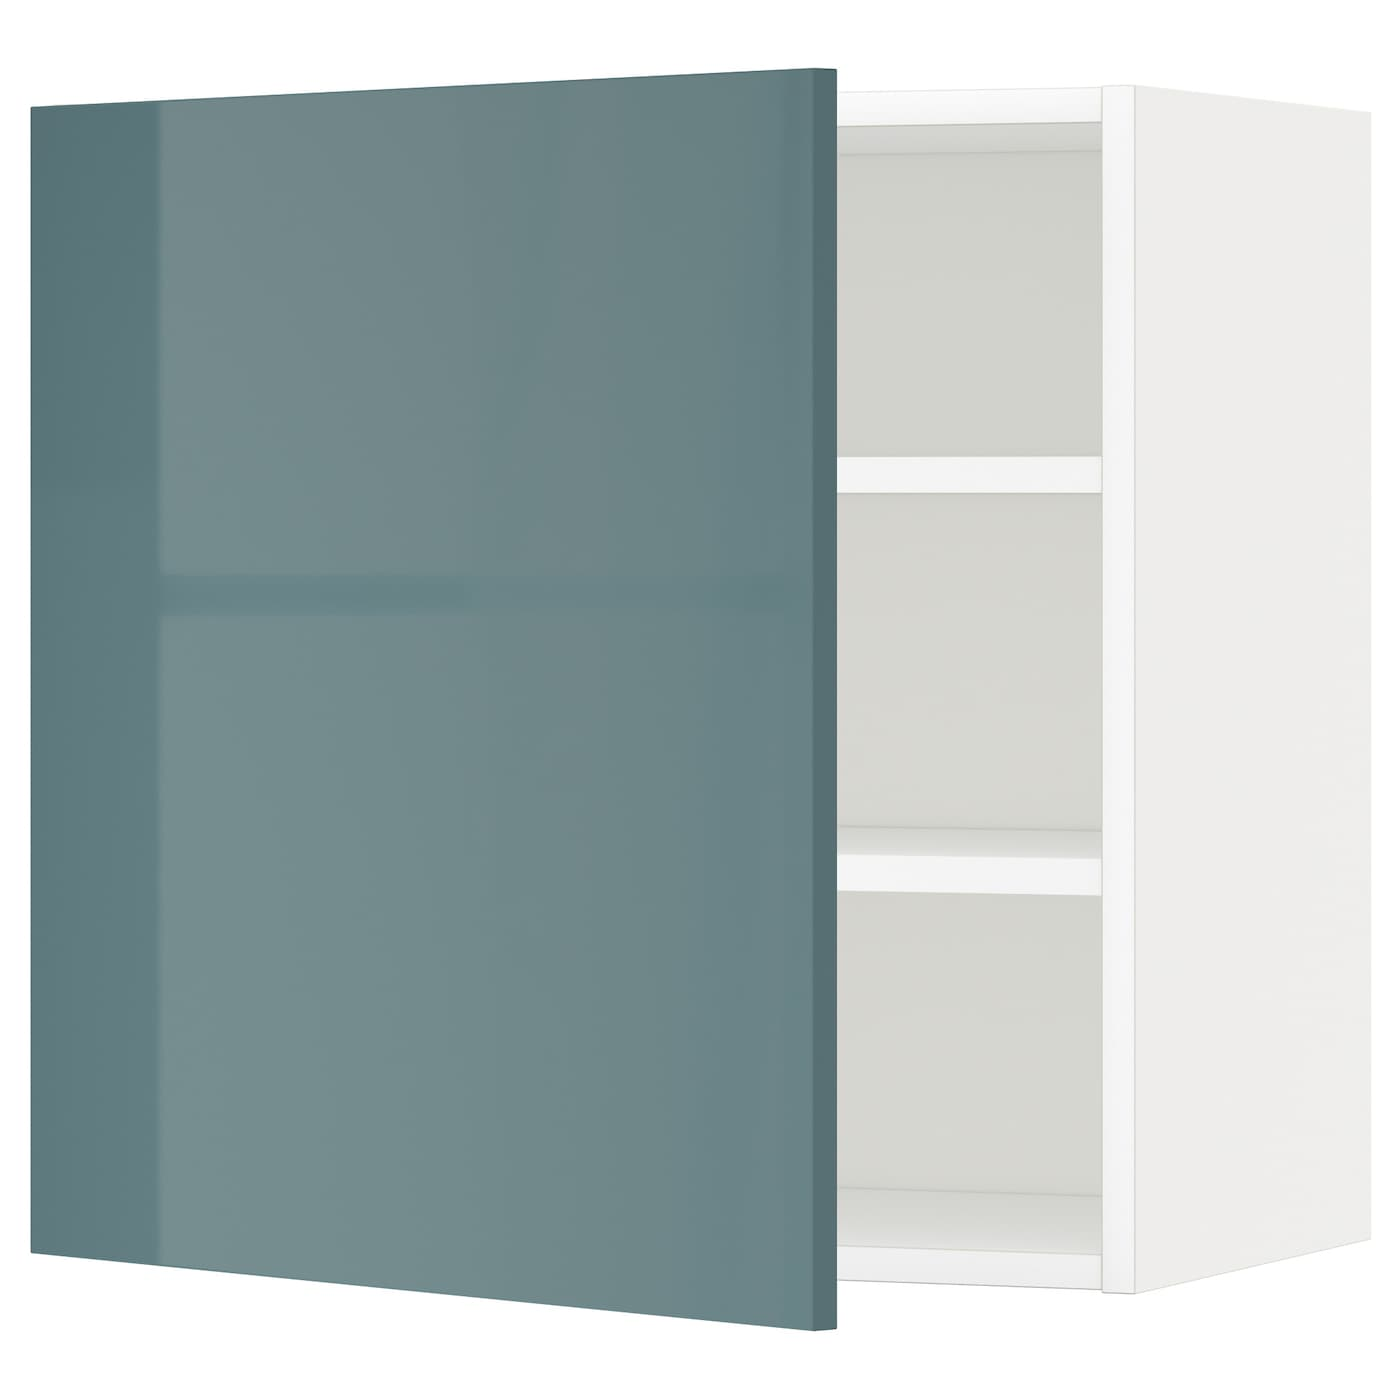 #4F6A6E  Wall Cabinet With Shelves White/kallarp Grey Turquoise 60x60 Cm IKEA with 2000x2000 px of Recommended Ikea Grey Shelf 20002000 save image @ avoidforclosure.info